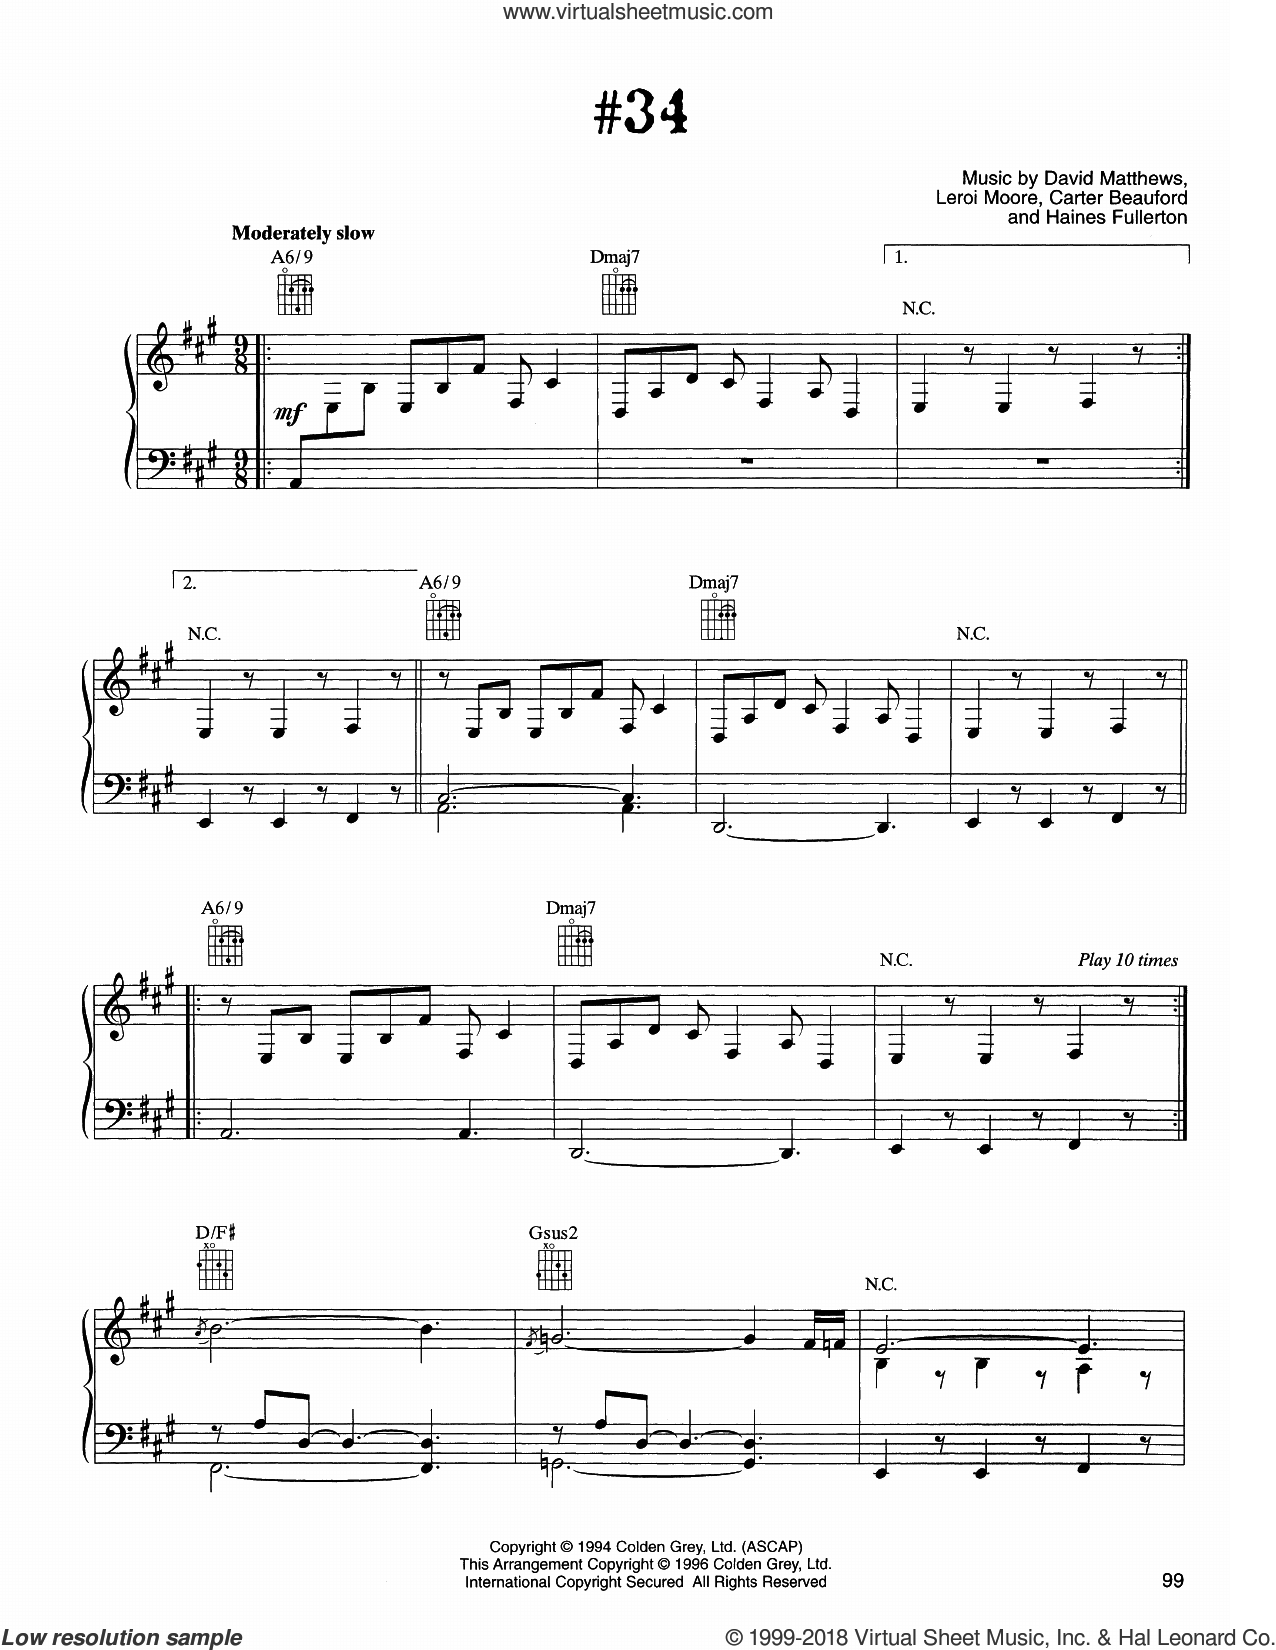 #34 sheet music for voice, piano or guitar by Dave Matthews Band, Carter Beauford, Haines Fullerton and Leroi Moore, intermediate skill level